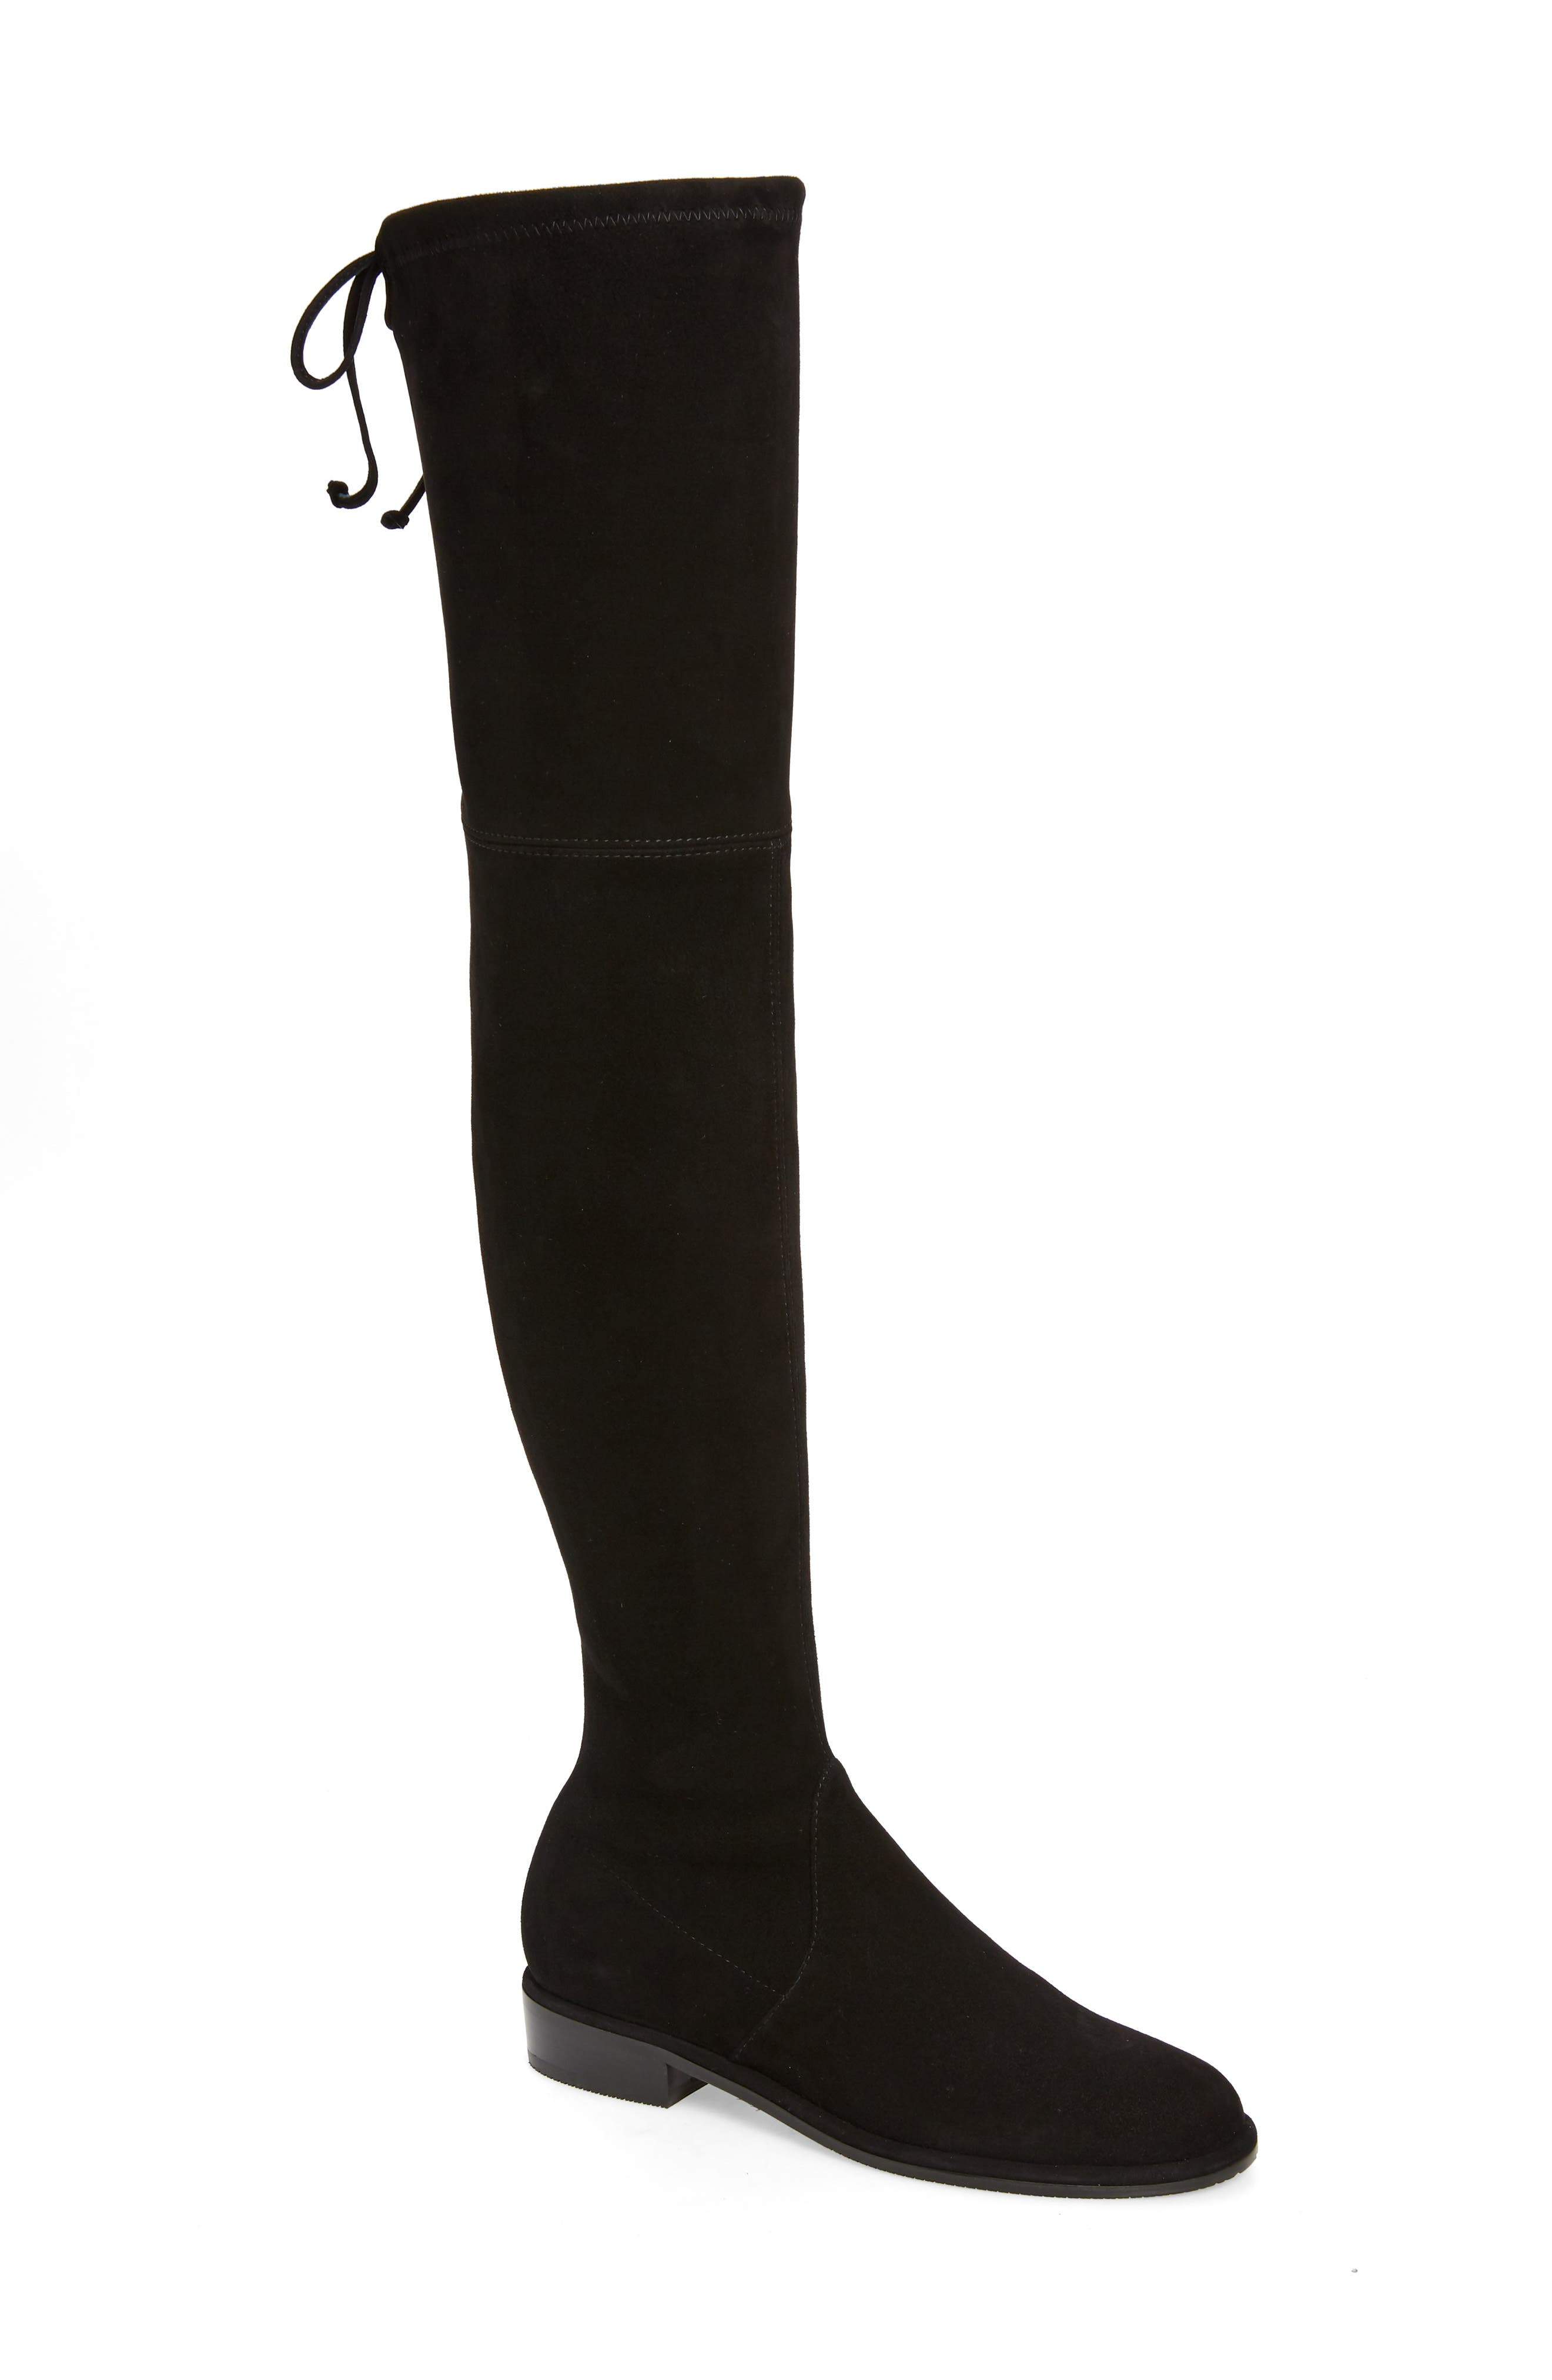 Over-the-Knee Boots for Women | Nordstrom